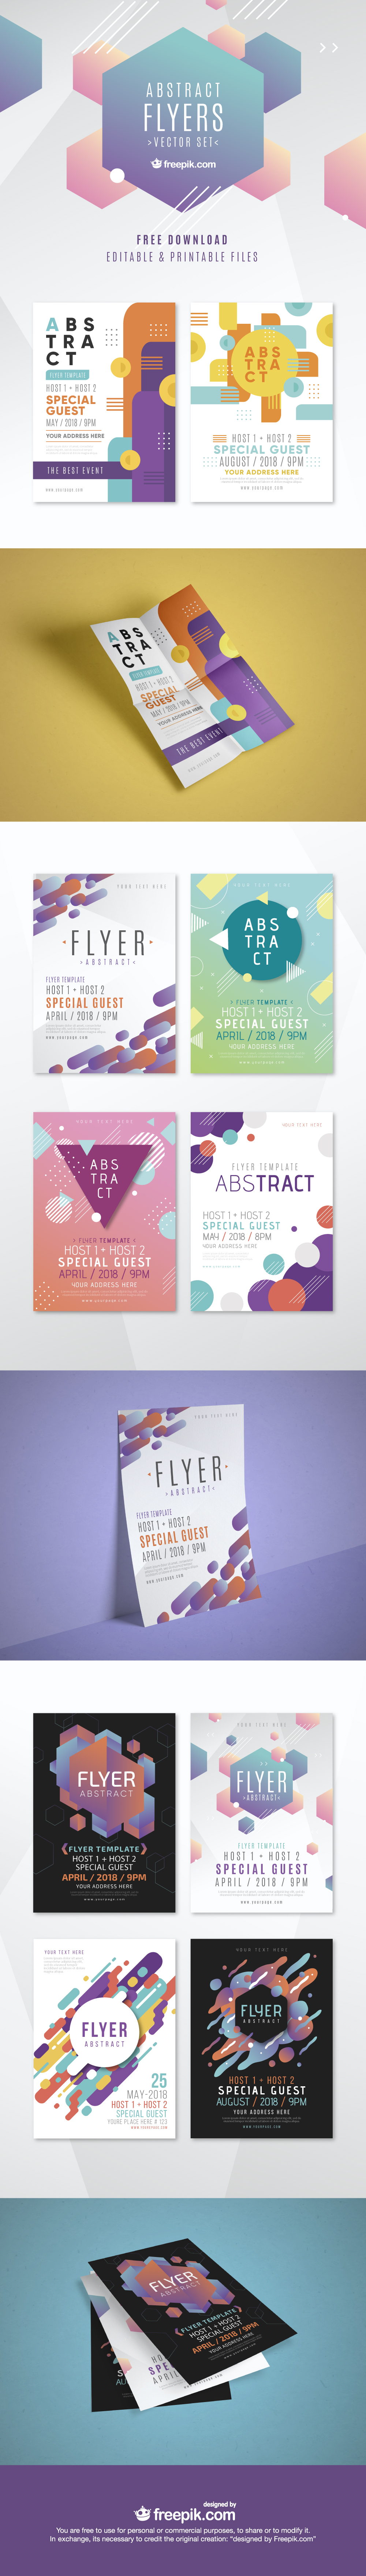 Free Abstract Flyer Templates for Events